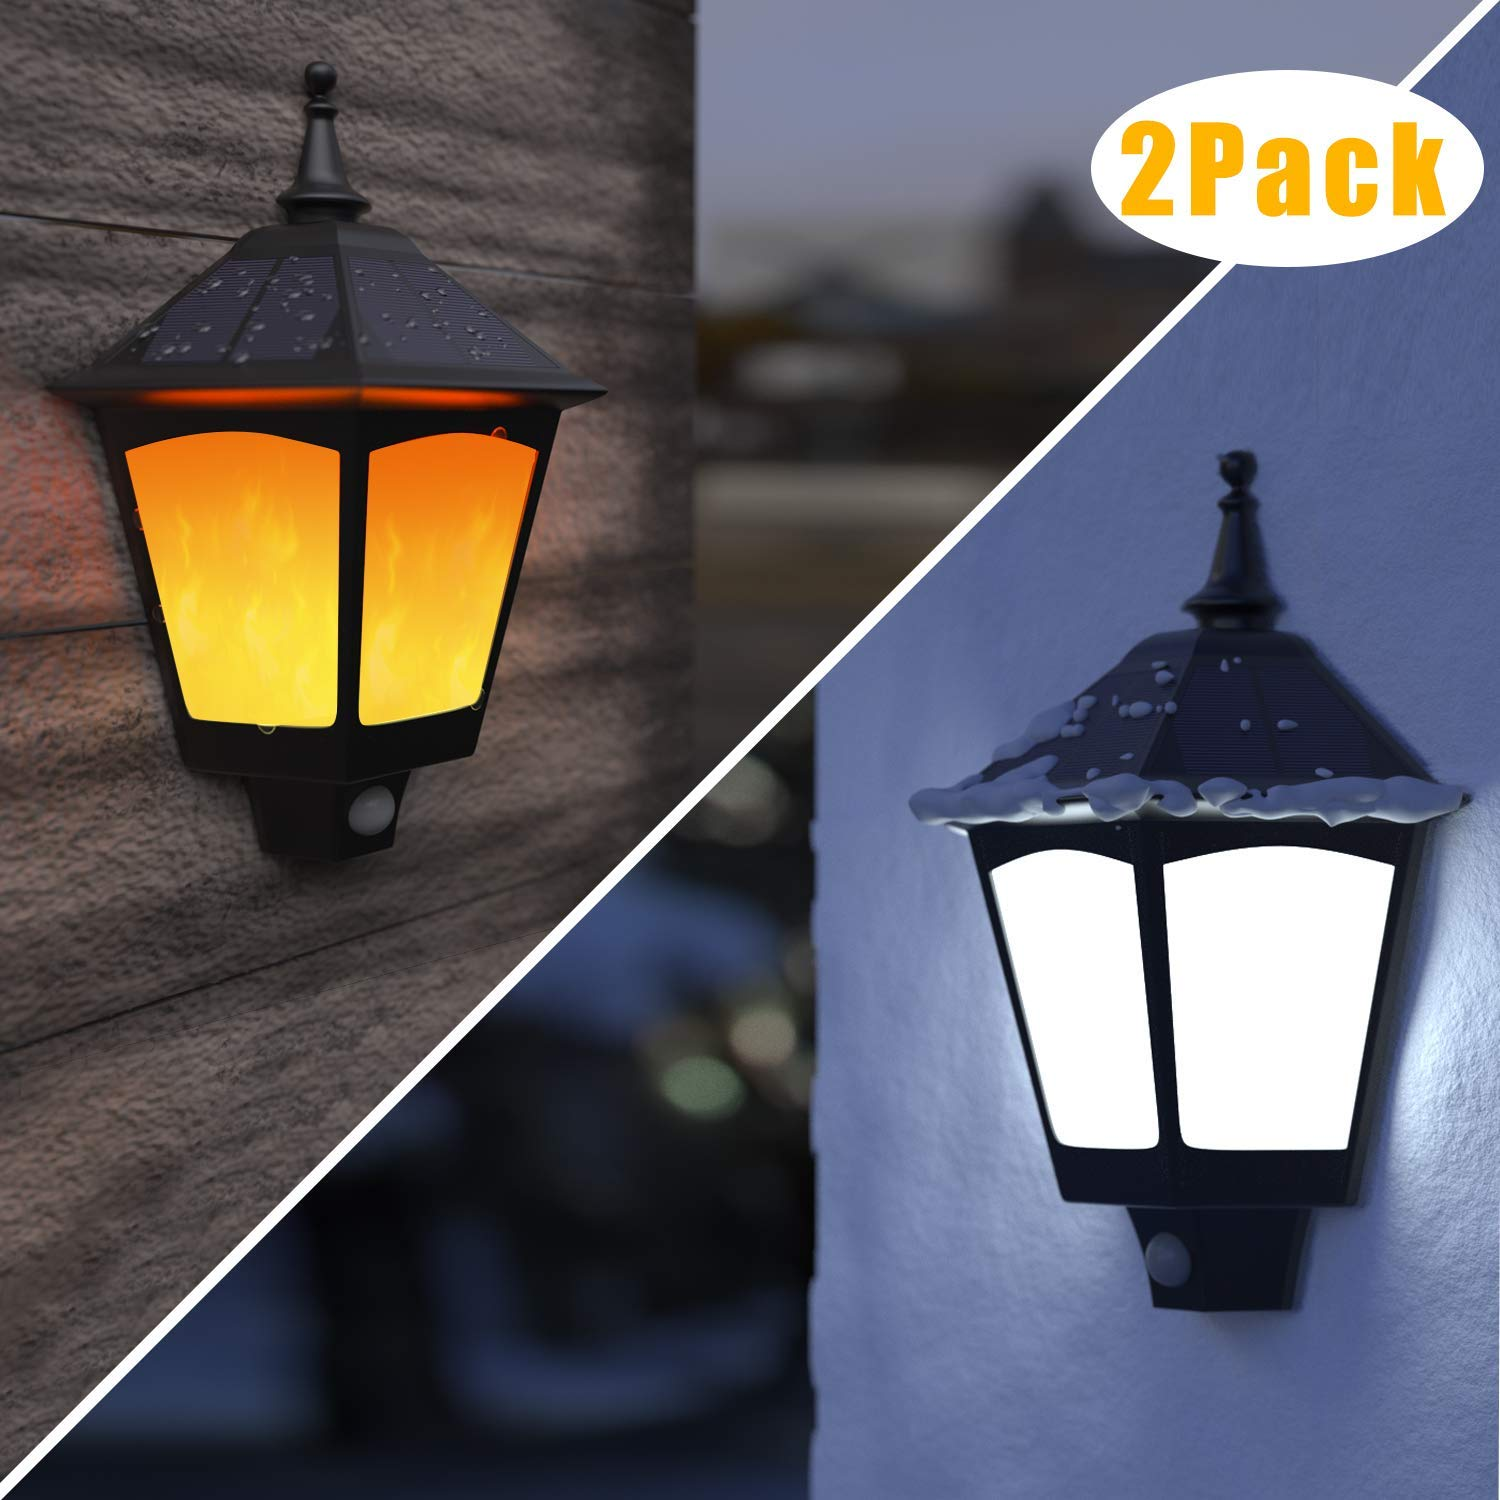 Solar Lights Outdoor Decorative - ALOVECO 2 in 1 Solar Wall Sconce, Solar Torch Lights with Flickering Flame, 87 LEDs Solar Motion by ALOVECO